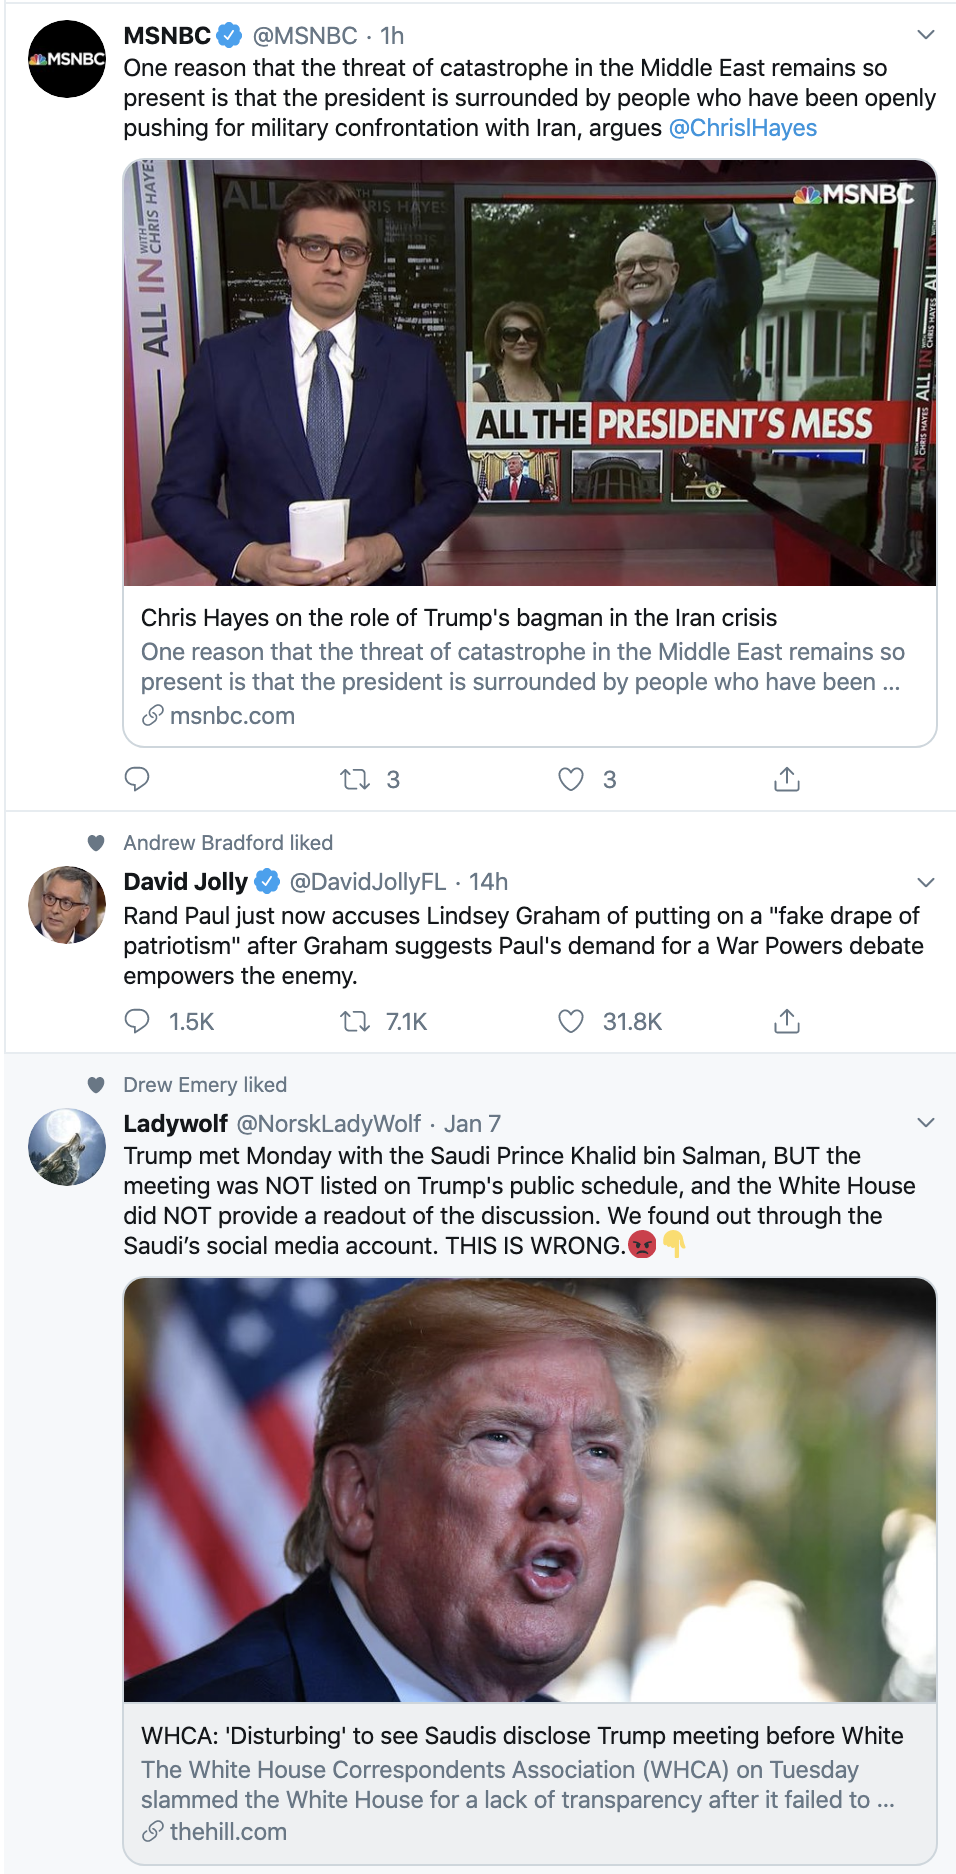 Screen-Shot-2020-01-09-at-8.12.03-AM Trump Claims Pelosi's Articles of Impeachment Not Valid Corruption Crime Featured Impeachment Top Stories